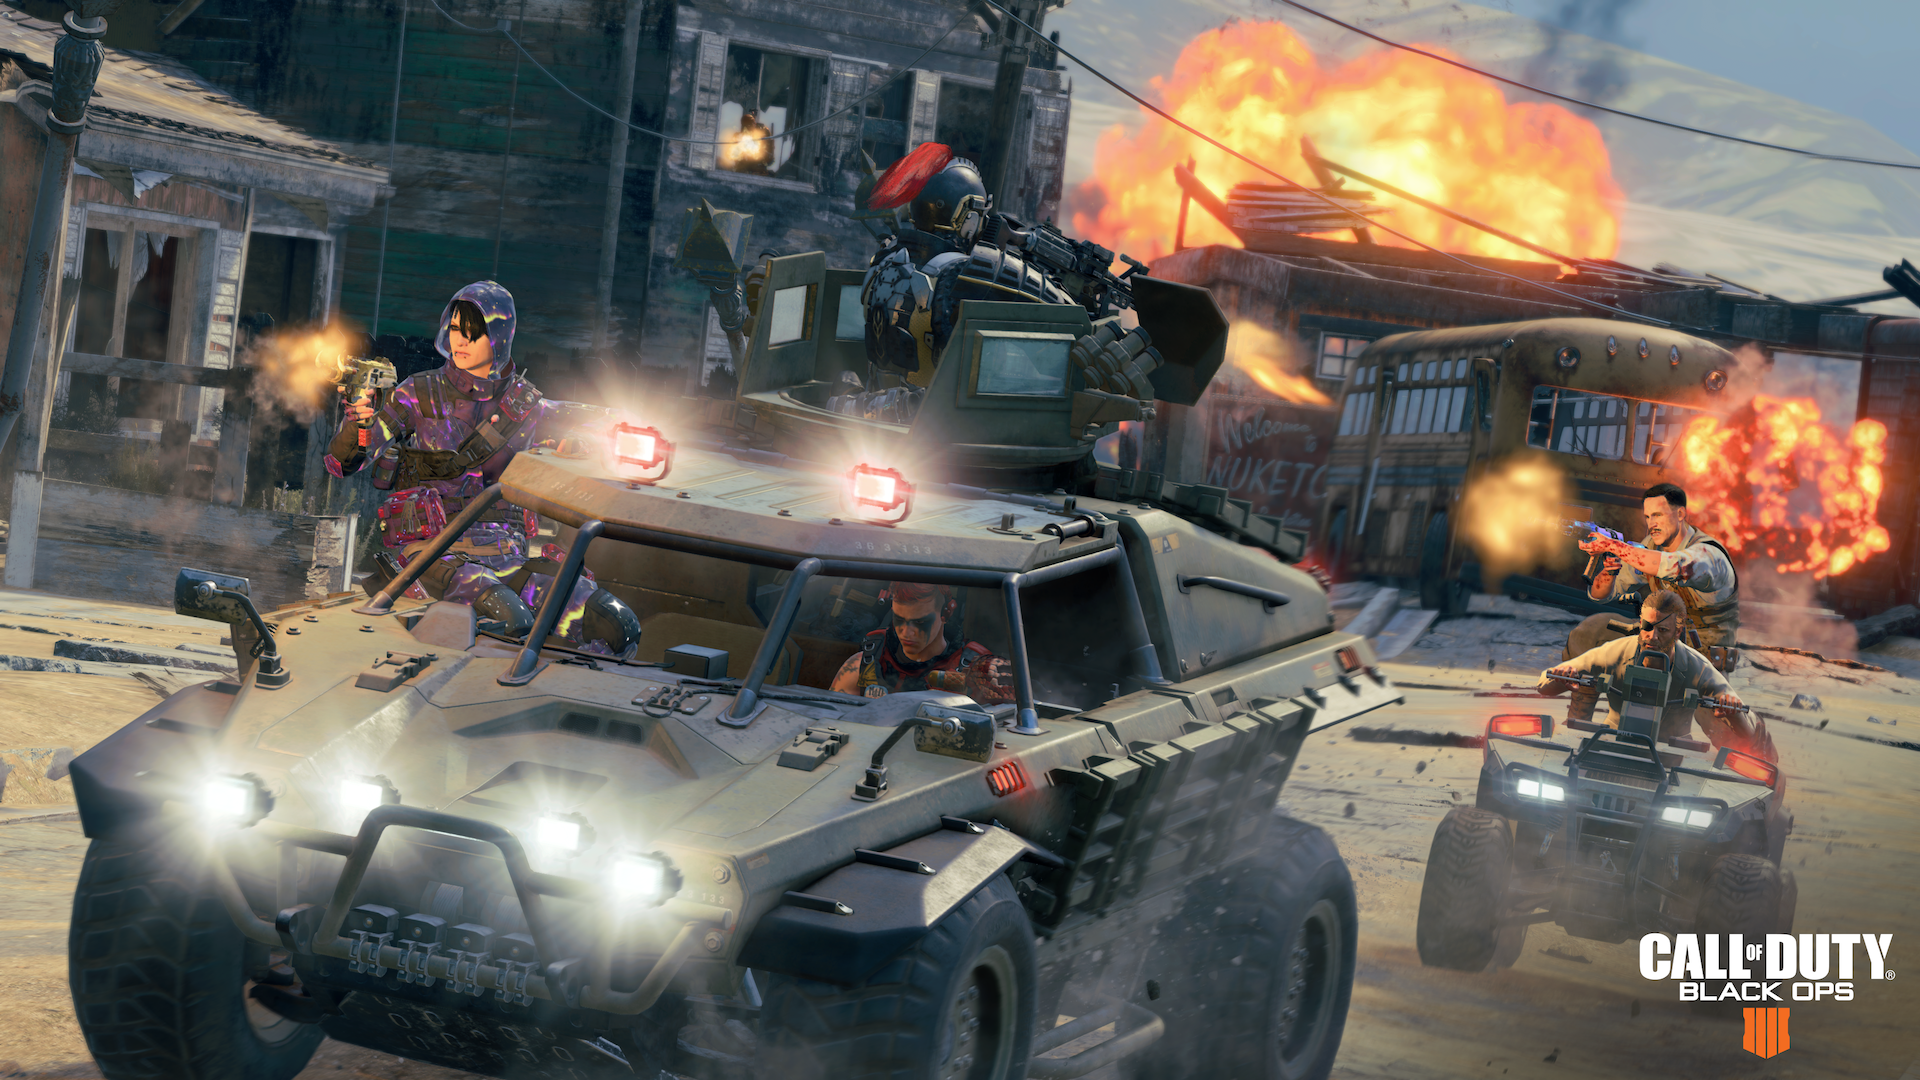 Call Of Duty Black Ops 4 Blackout Vehicles - HD Wallpaper